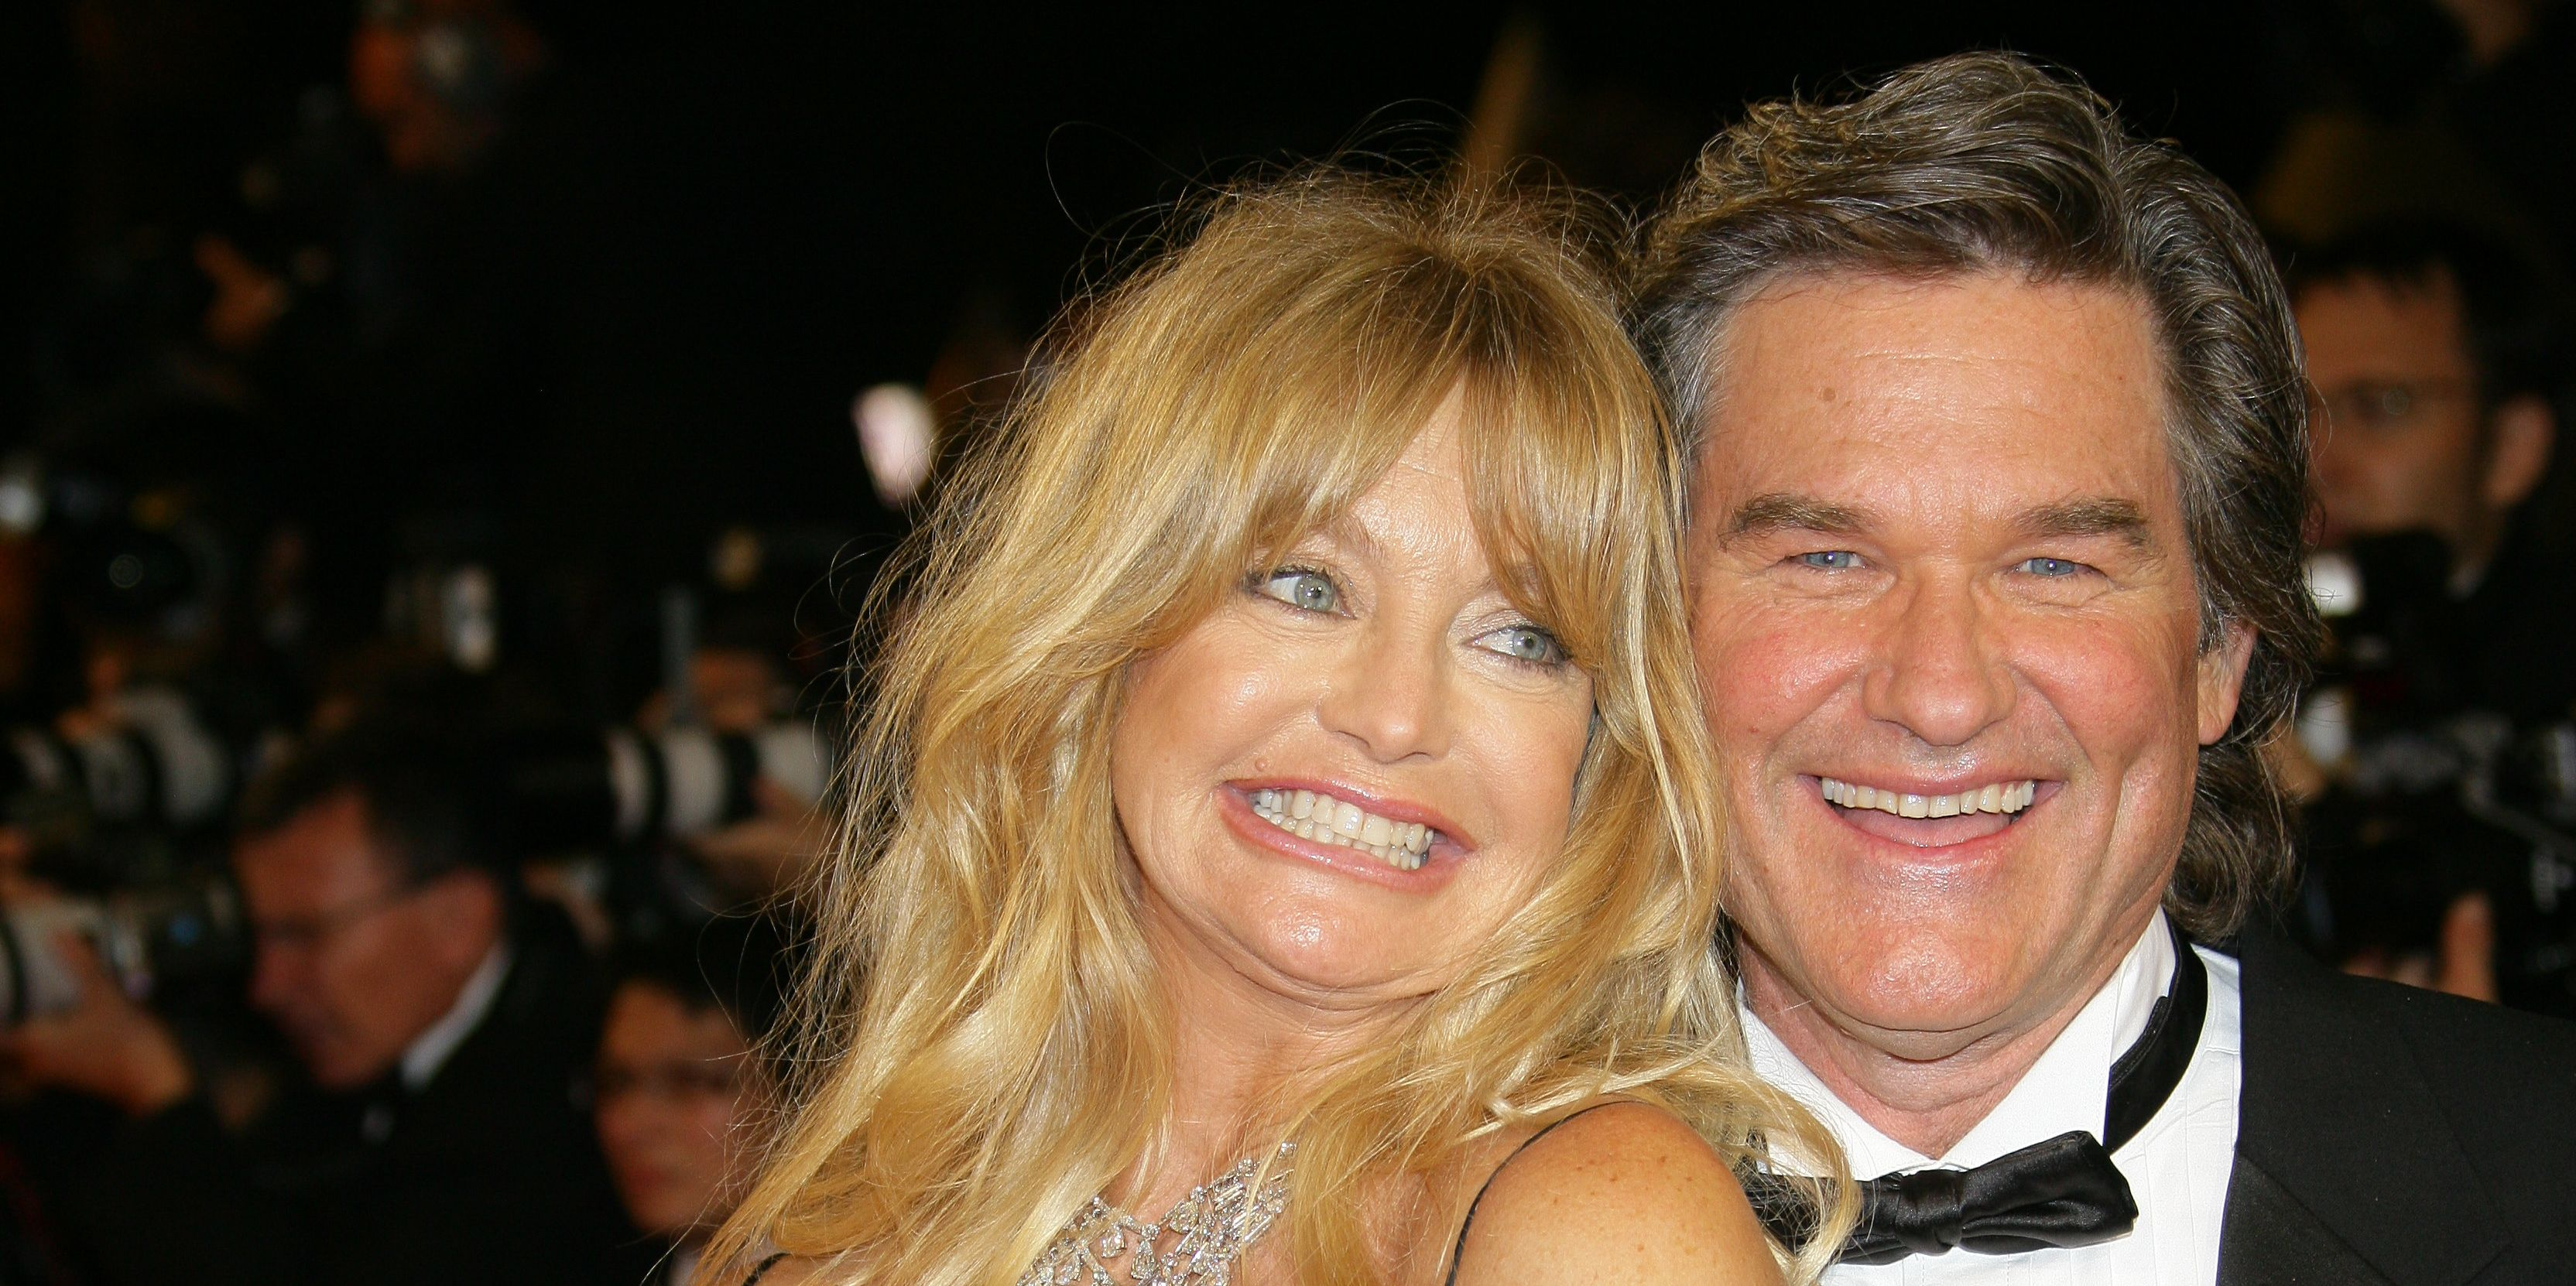 Goldie Hawn and Kurt Russell Share the Secret to Their 35-Year Romance